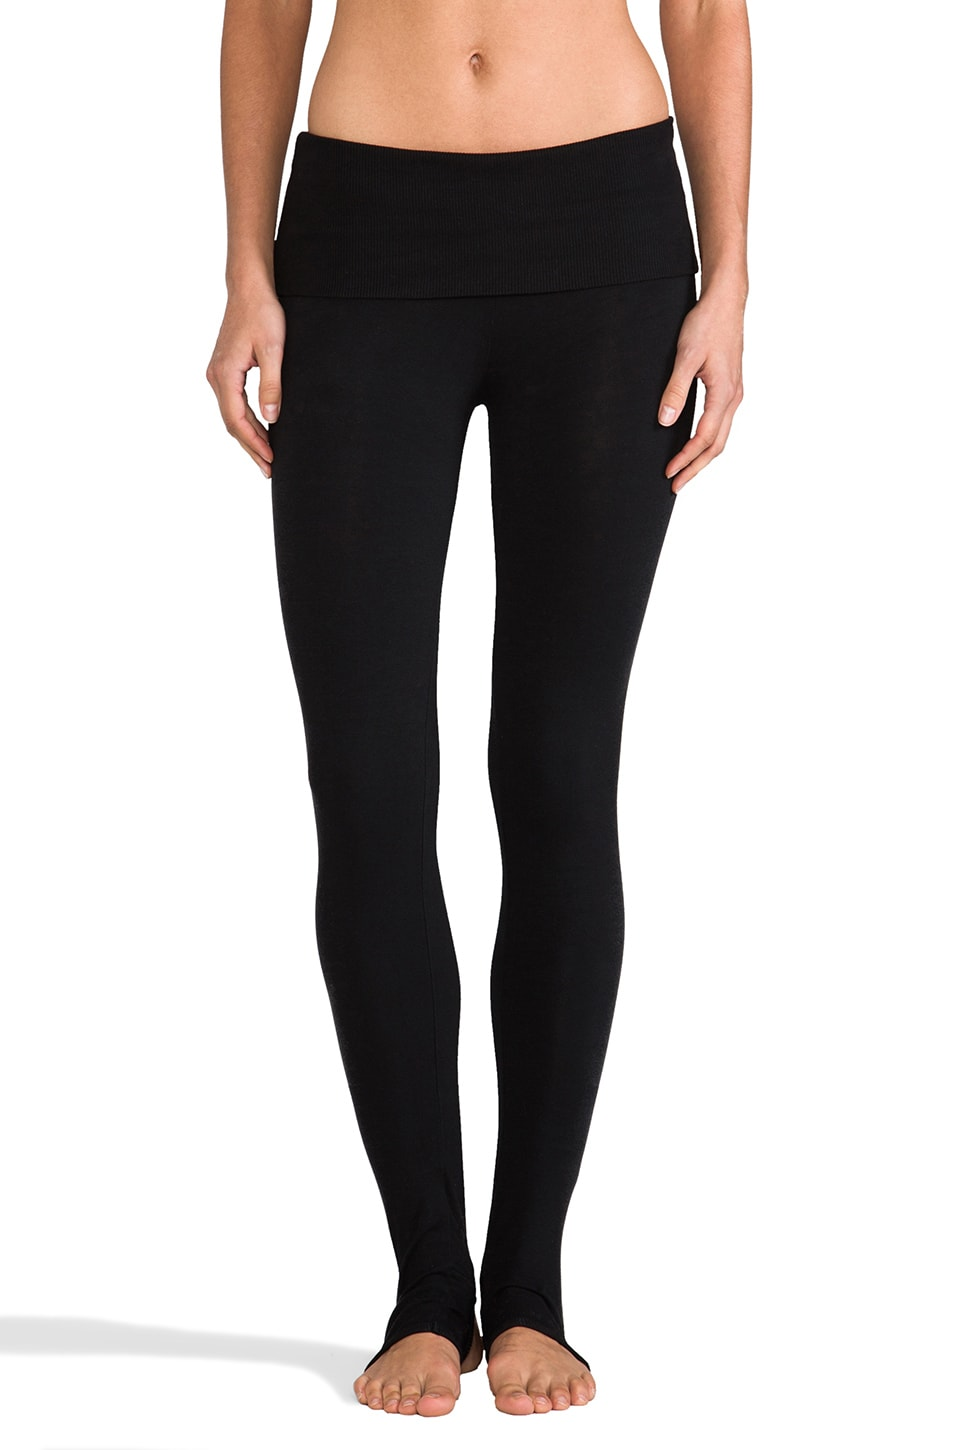 SOLOW Barre Legging w/ Footholes